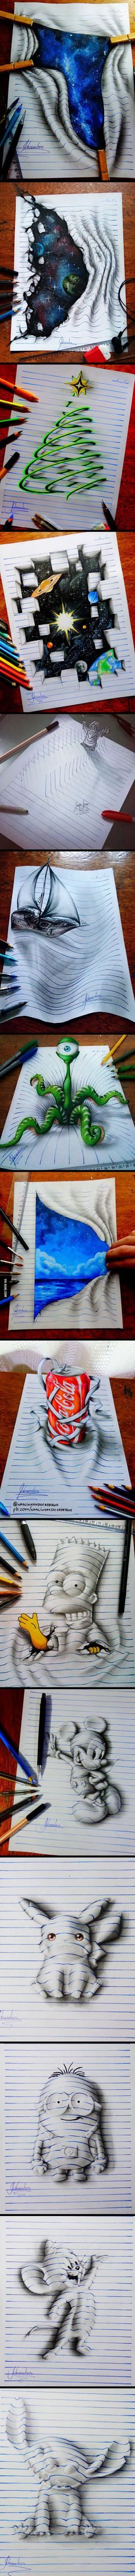 Artist João Carvalho Creates 3-D Doodles That Leap Off The Page - 9GAG